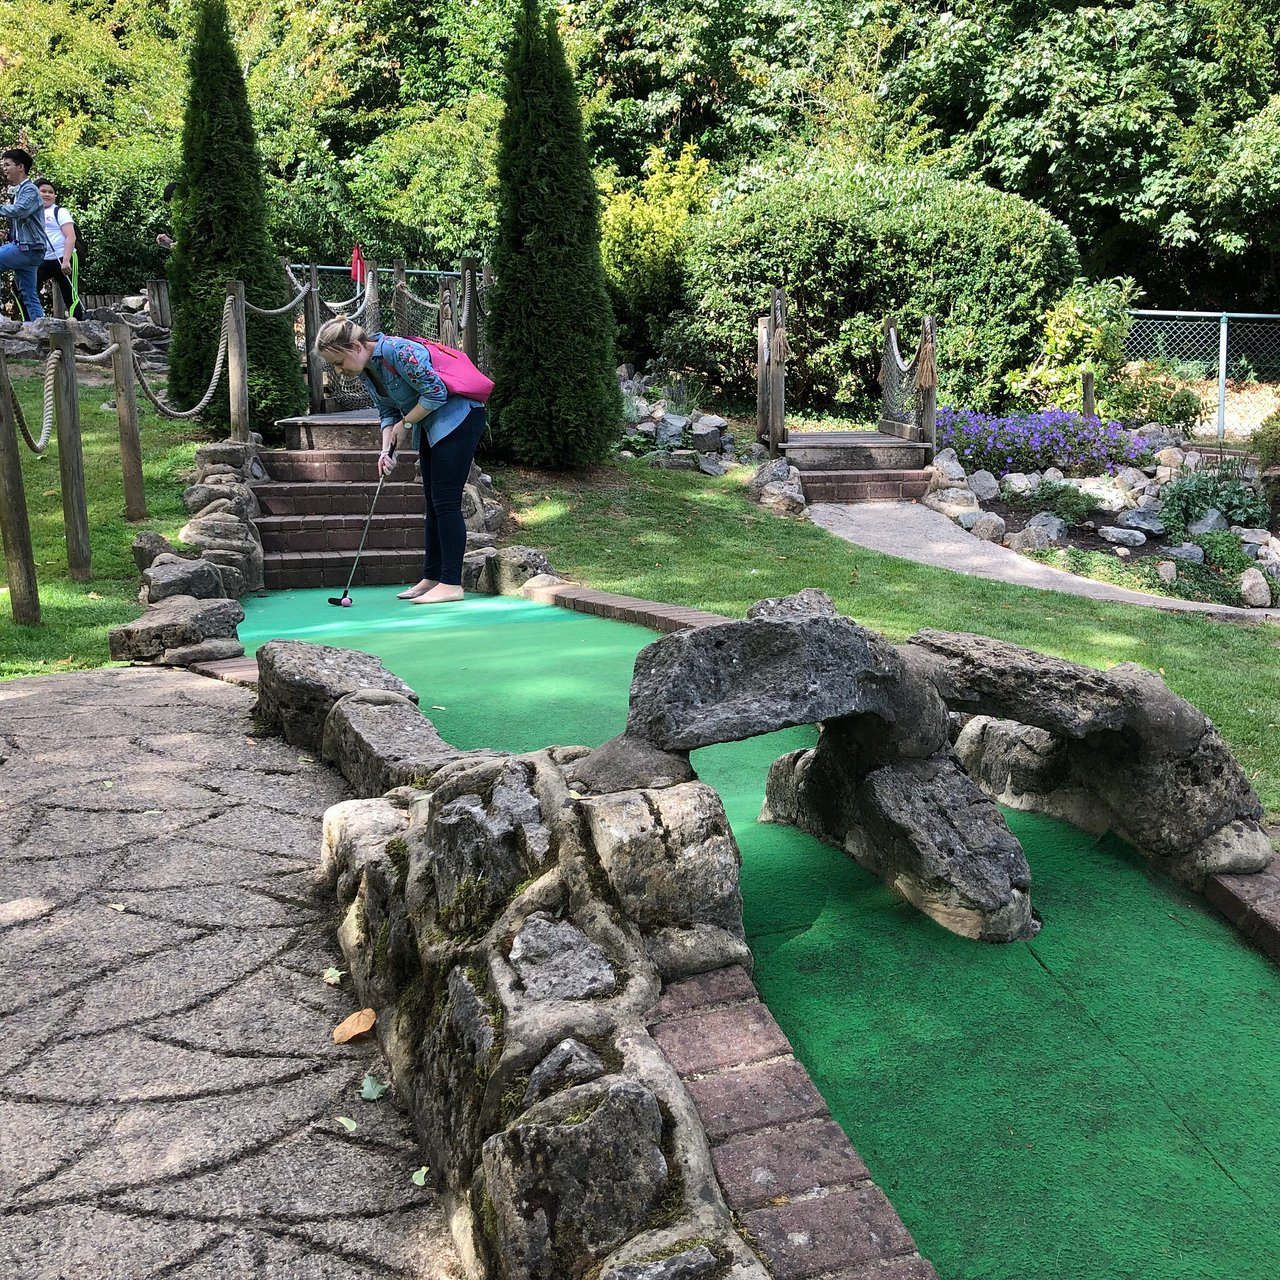 Best crazy golf uk betting where to buy bitcoins instantly with paypal